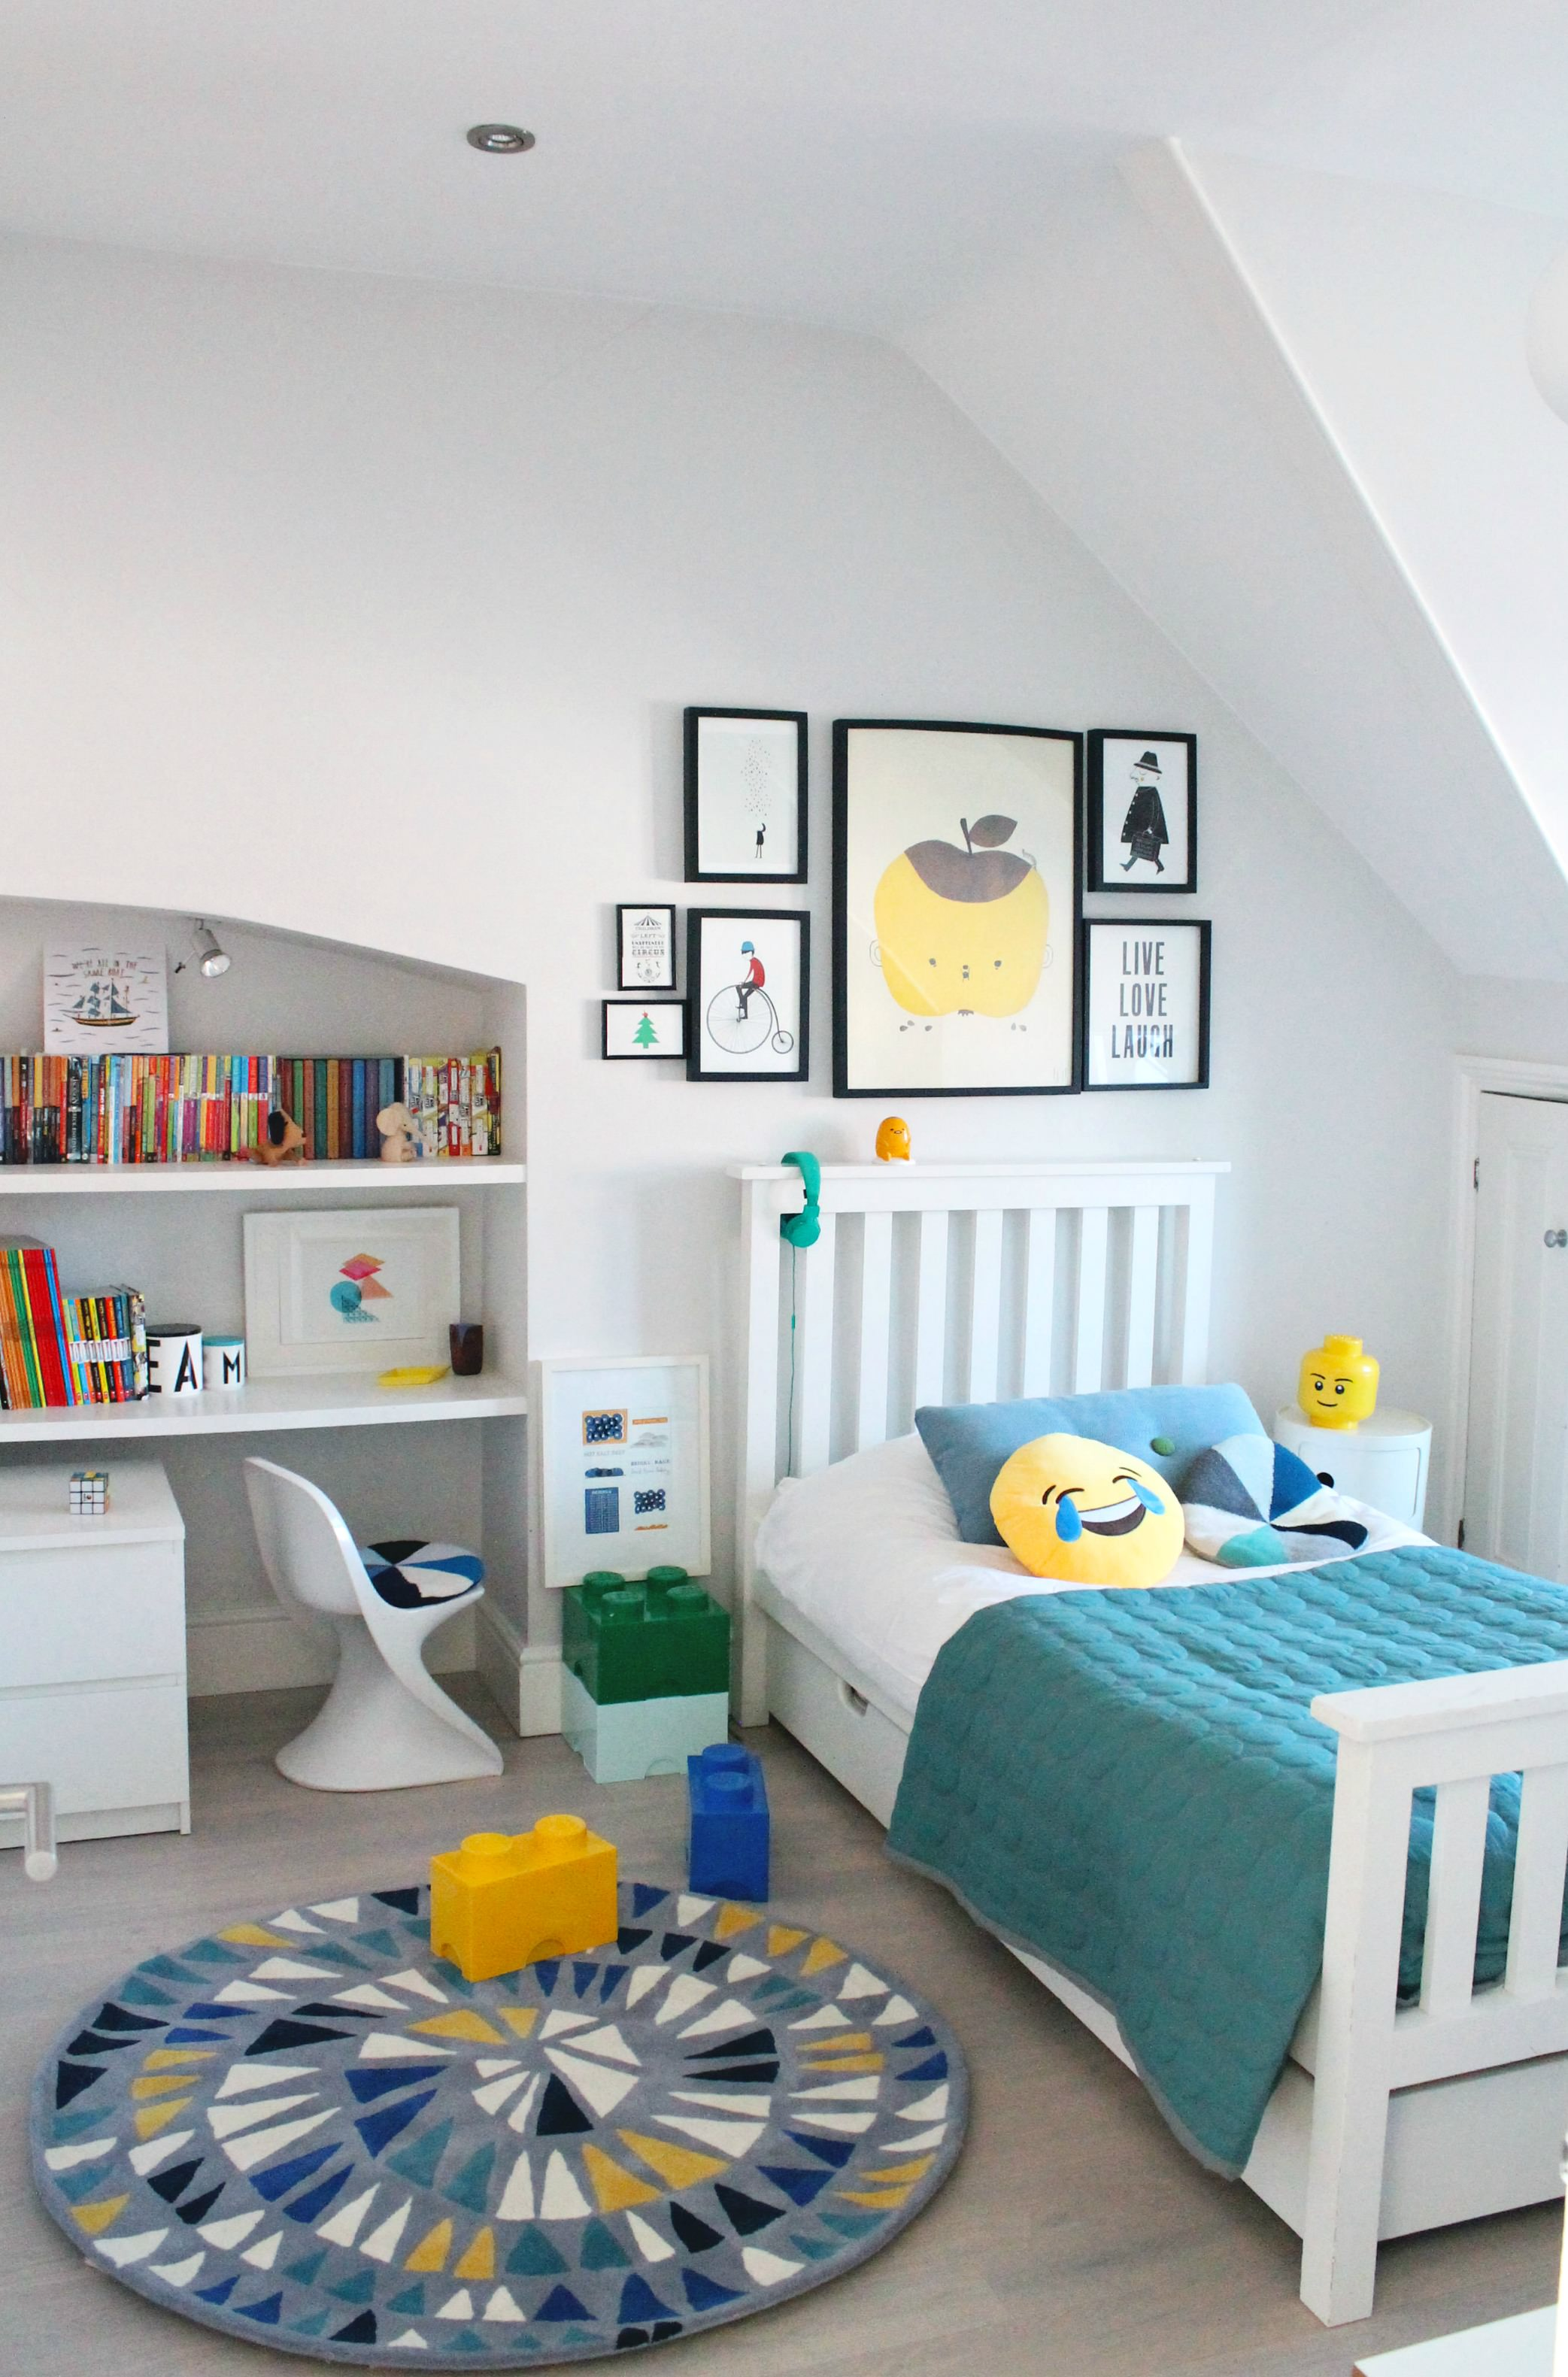 LittleBIGBELL Boys Bedroom Ideas Decorating With A Rug From Little P